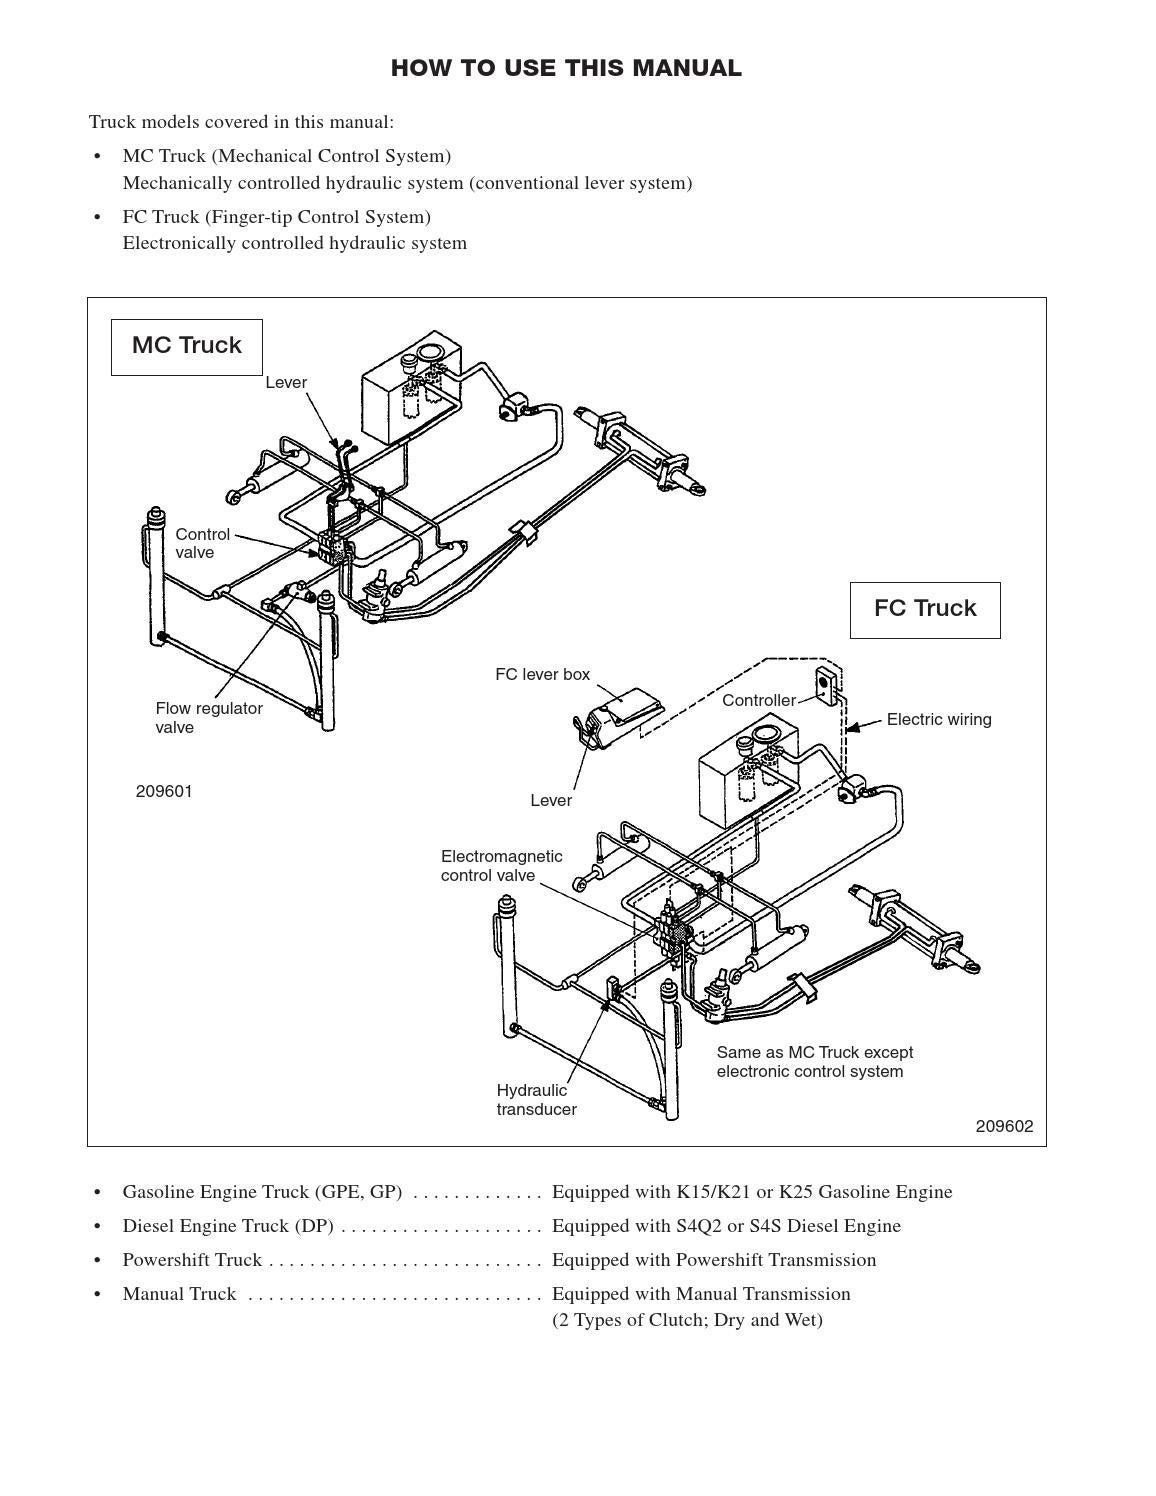 hight resolution of caterpillar cat dp18n forklift lift truck service repair manual sn t16d 80001 and up by 1634368 issuu